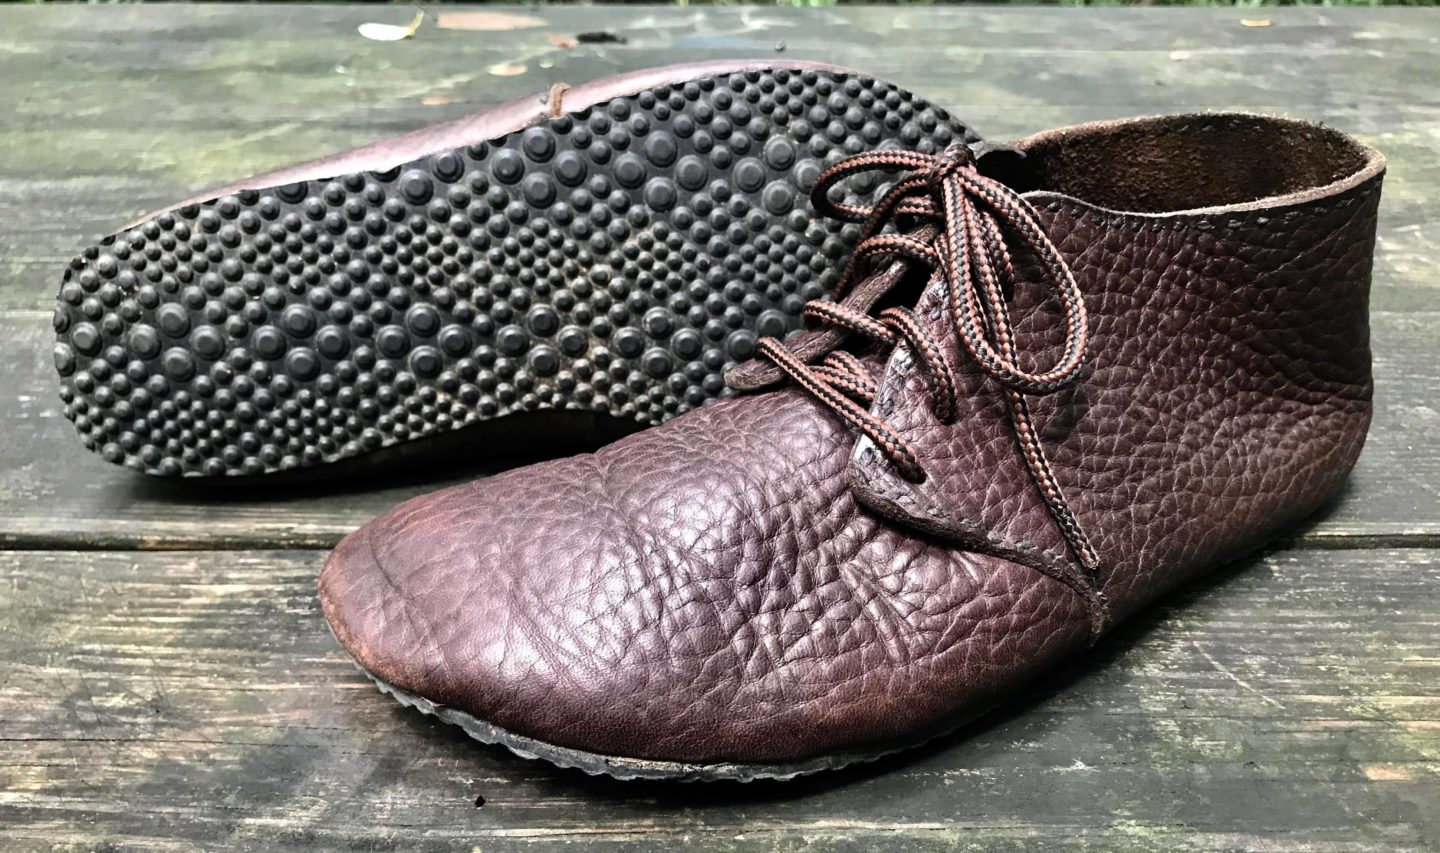 Pair of lace up turn shoes with Vibram sole